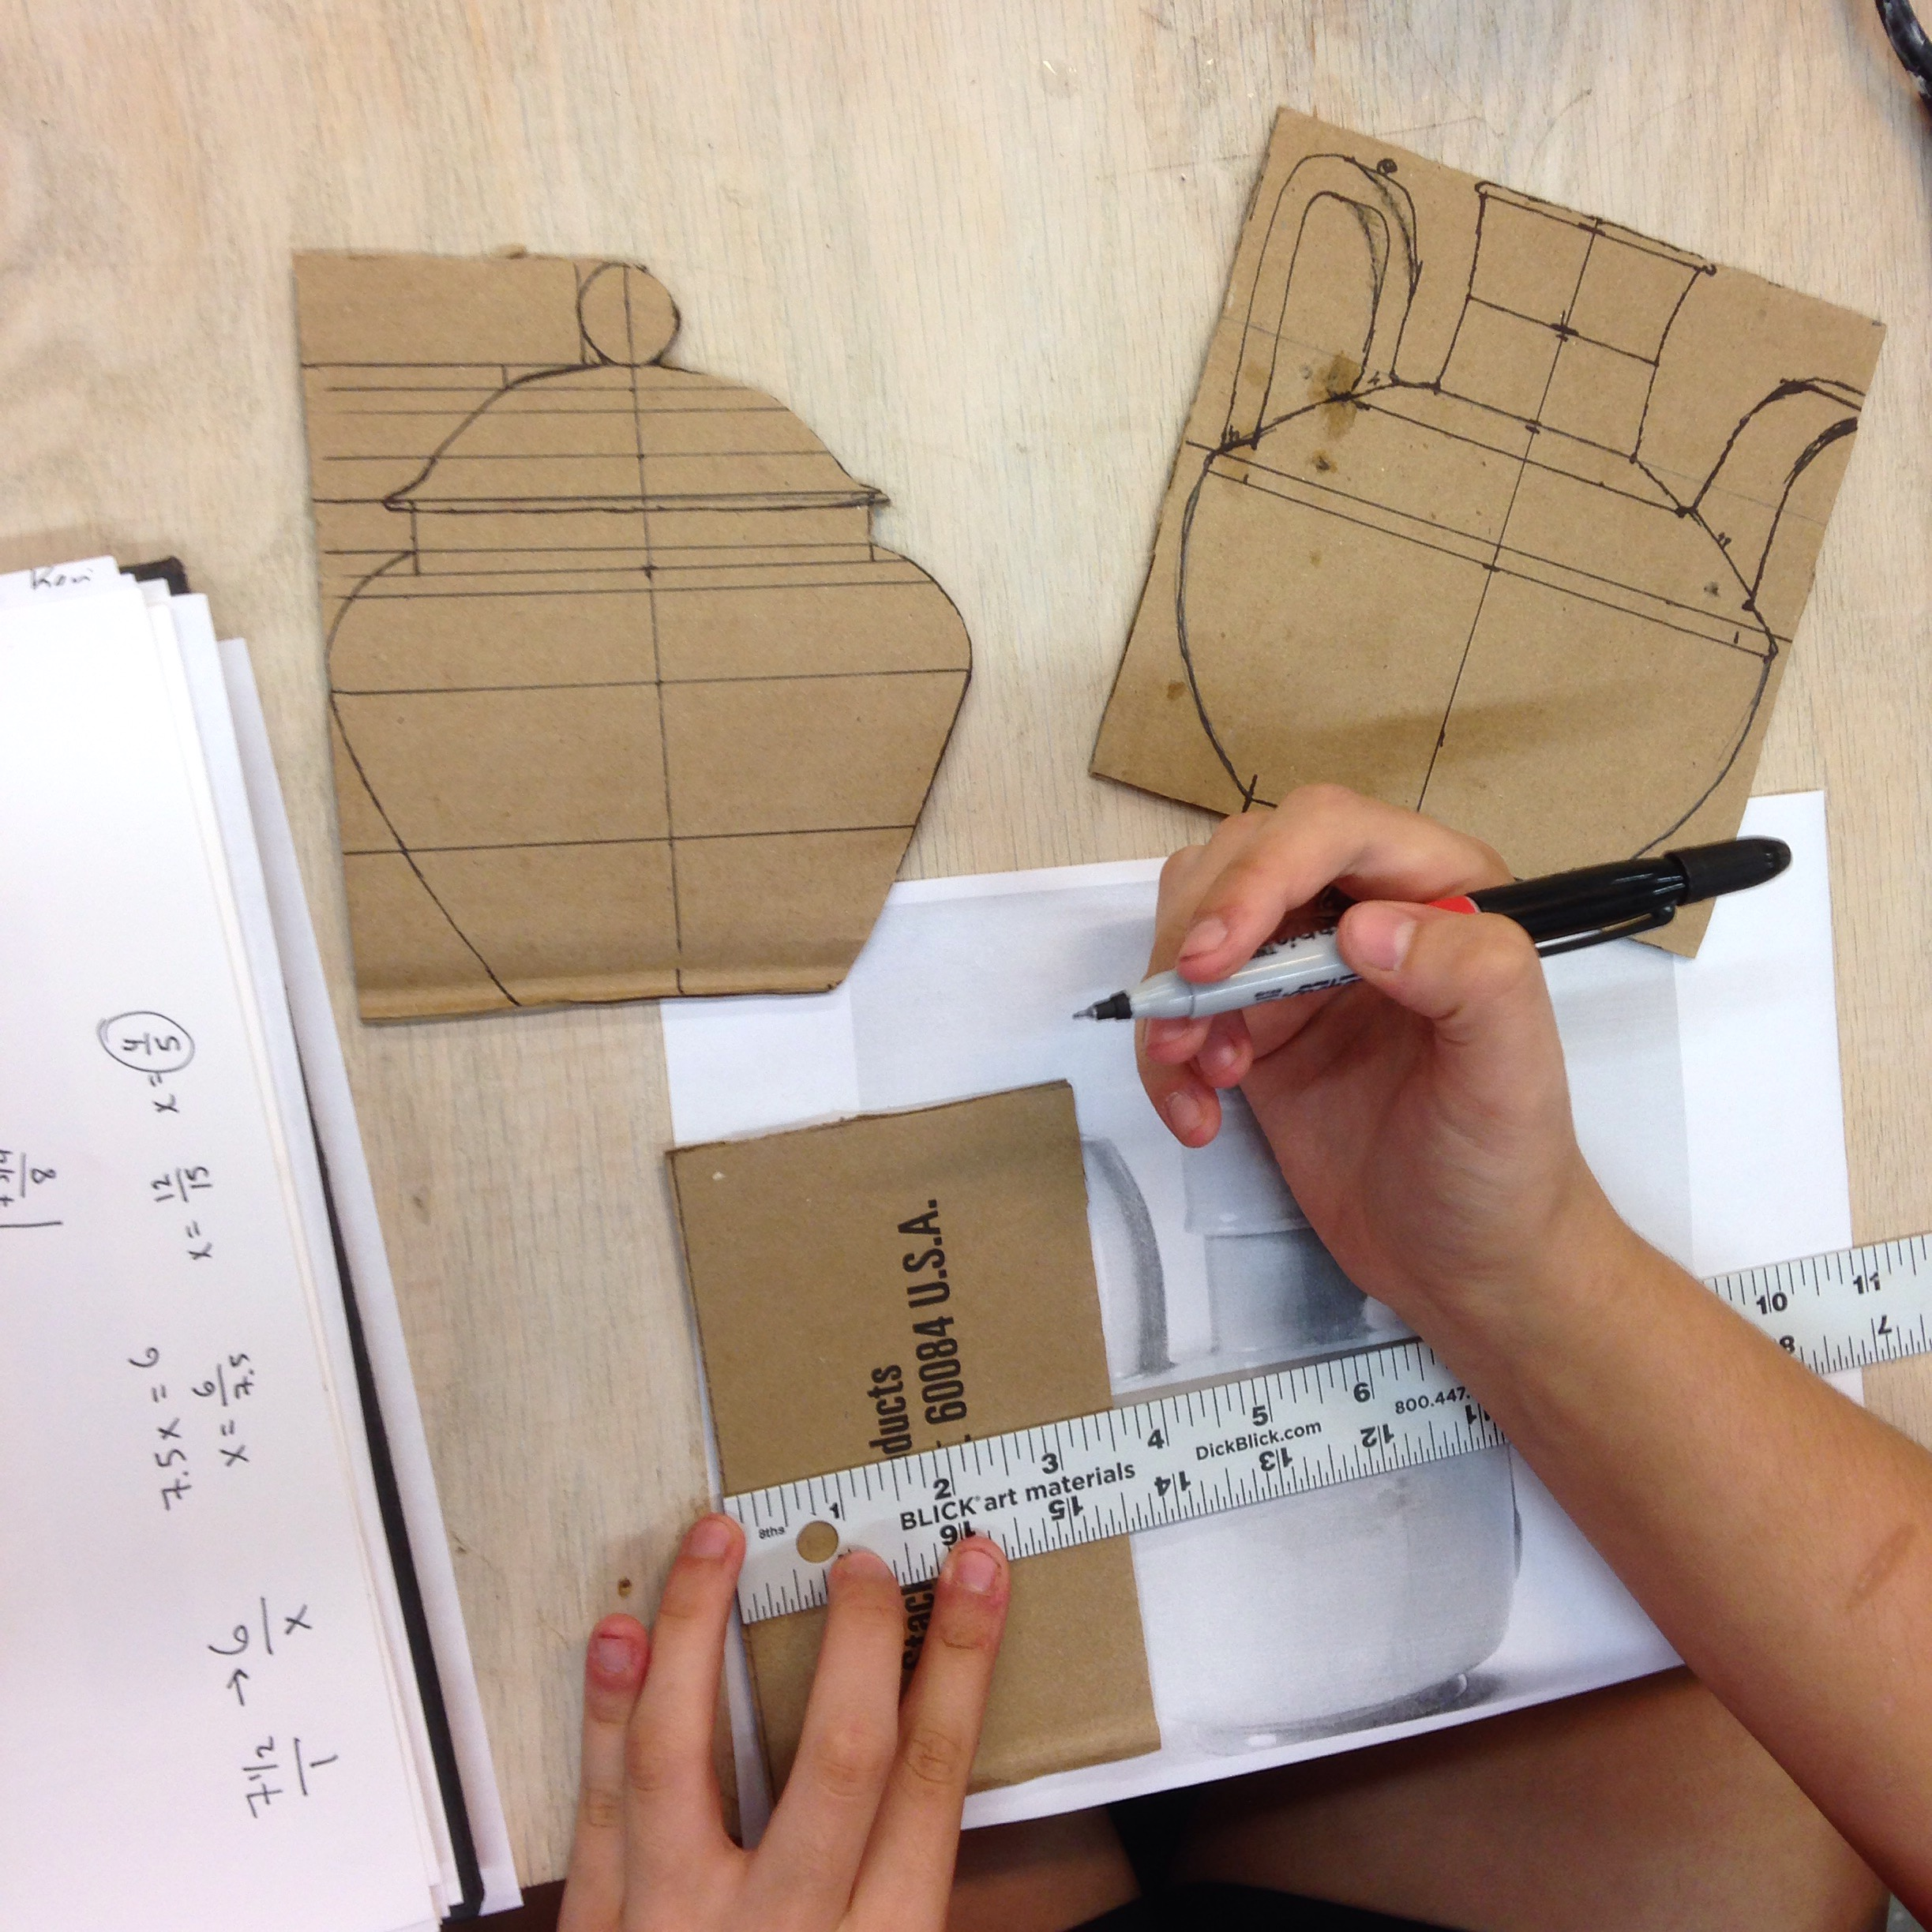 One student works out the proportions and scale of her chosen pot by measuring a print of the original pot and translating it onto a cardboard template.